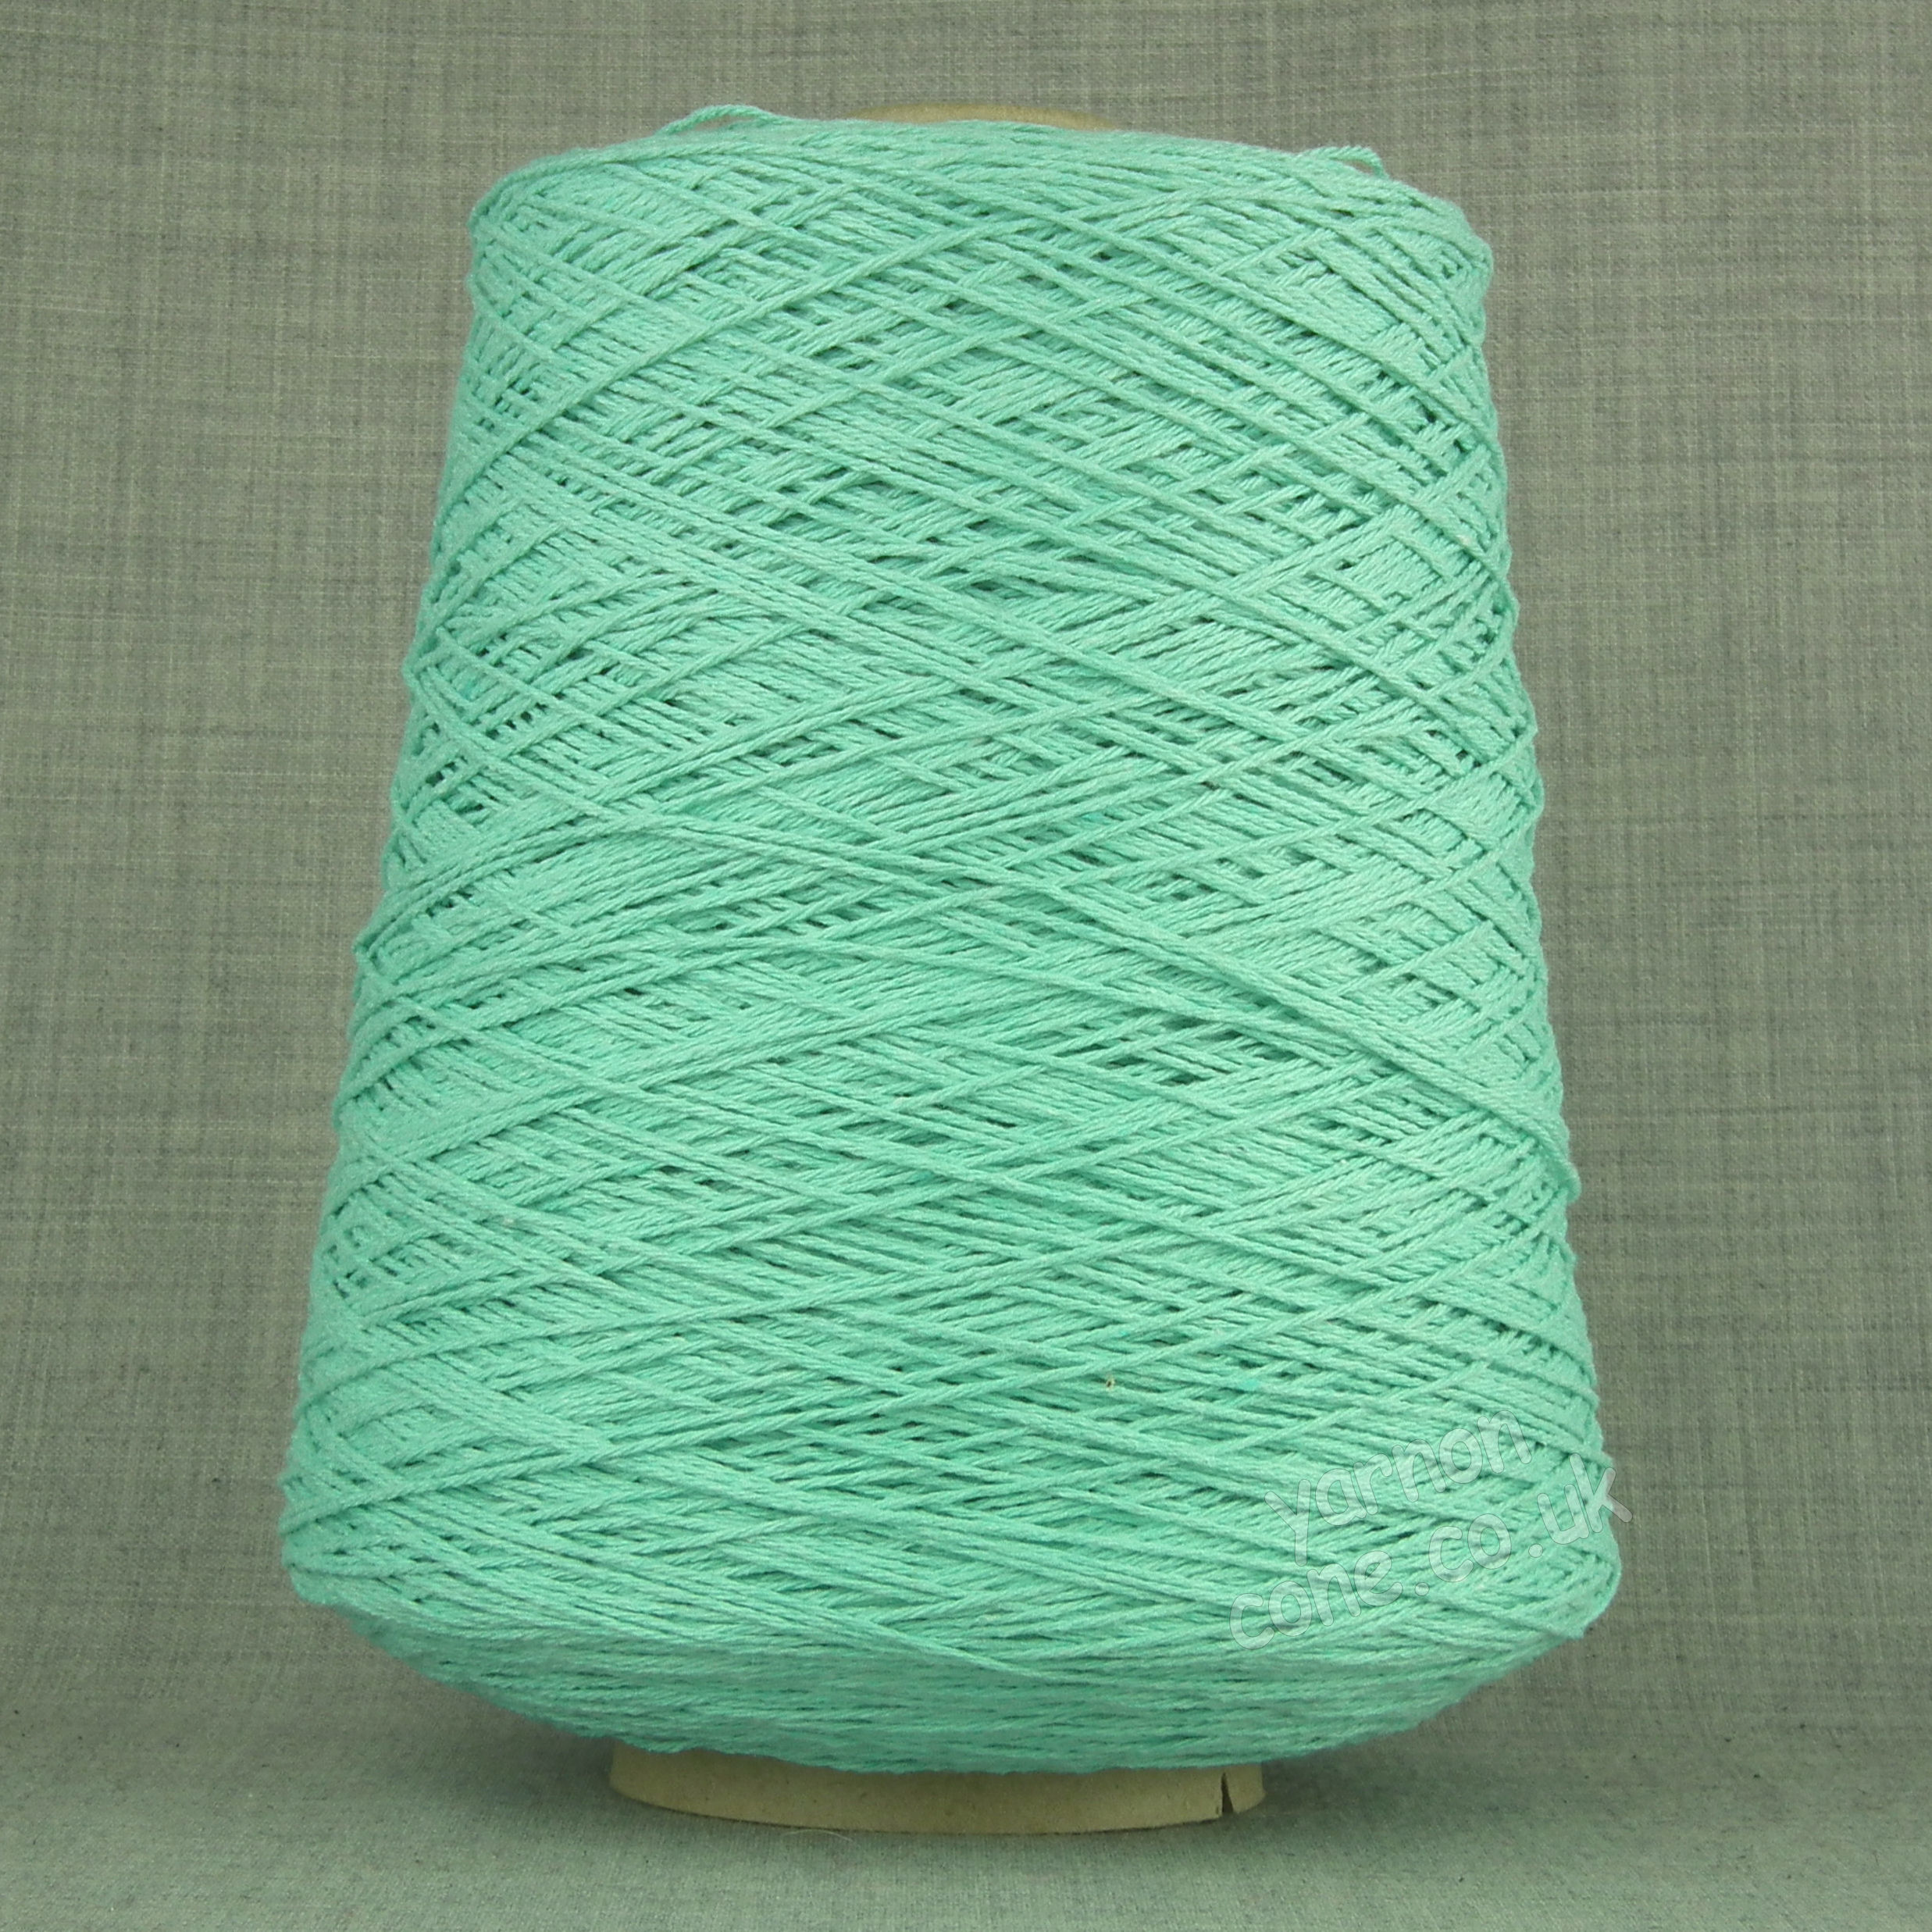 4 ply cotton yarn on cone - 4ply coned knitting 100% pure super soft pima cotton in vibrant shades for crochet hand machine knitting weaving and embroidery thread